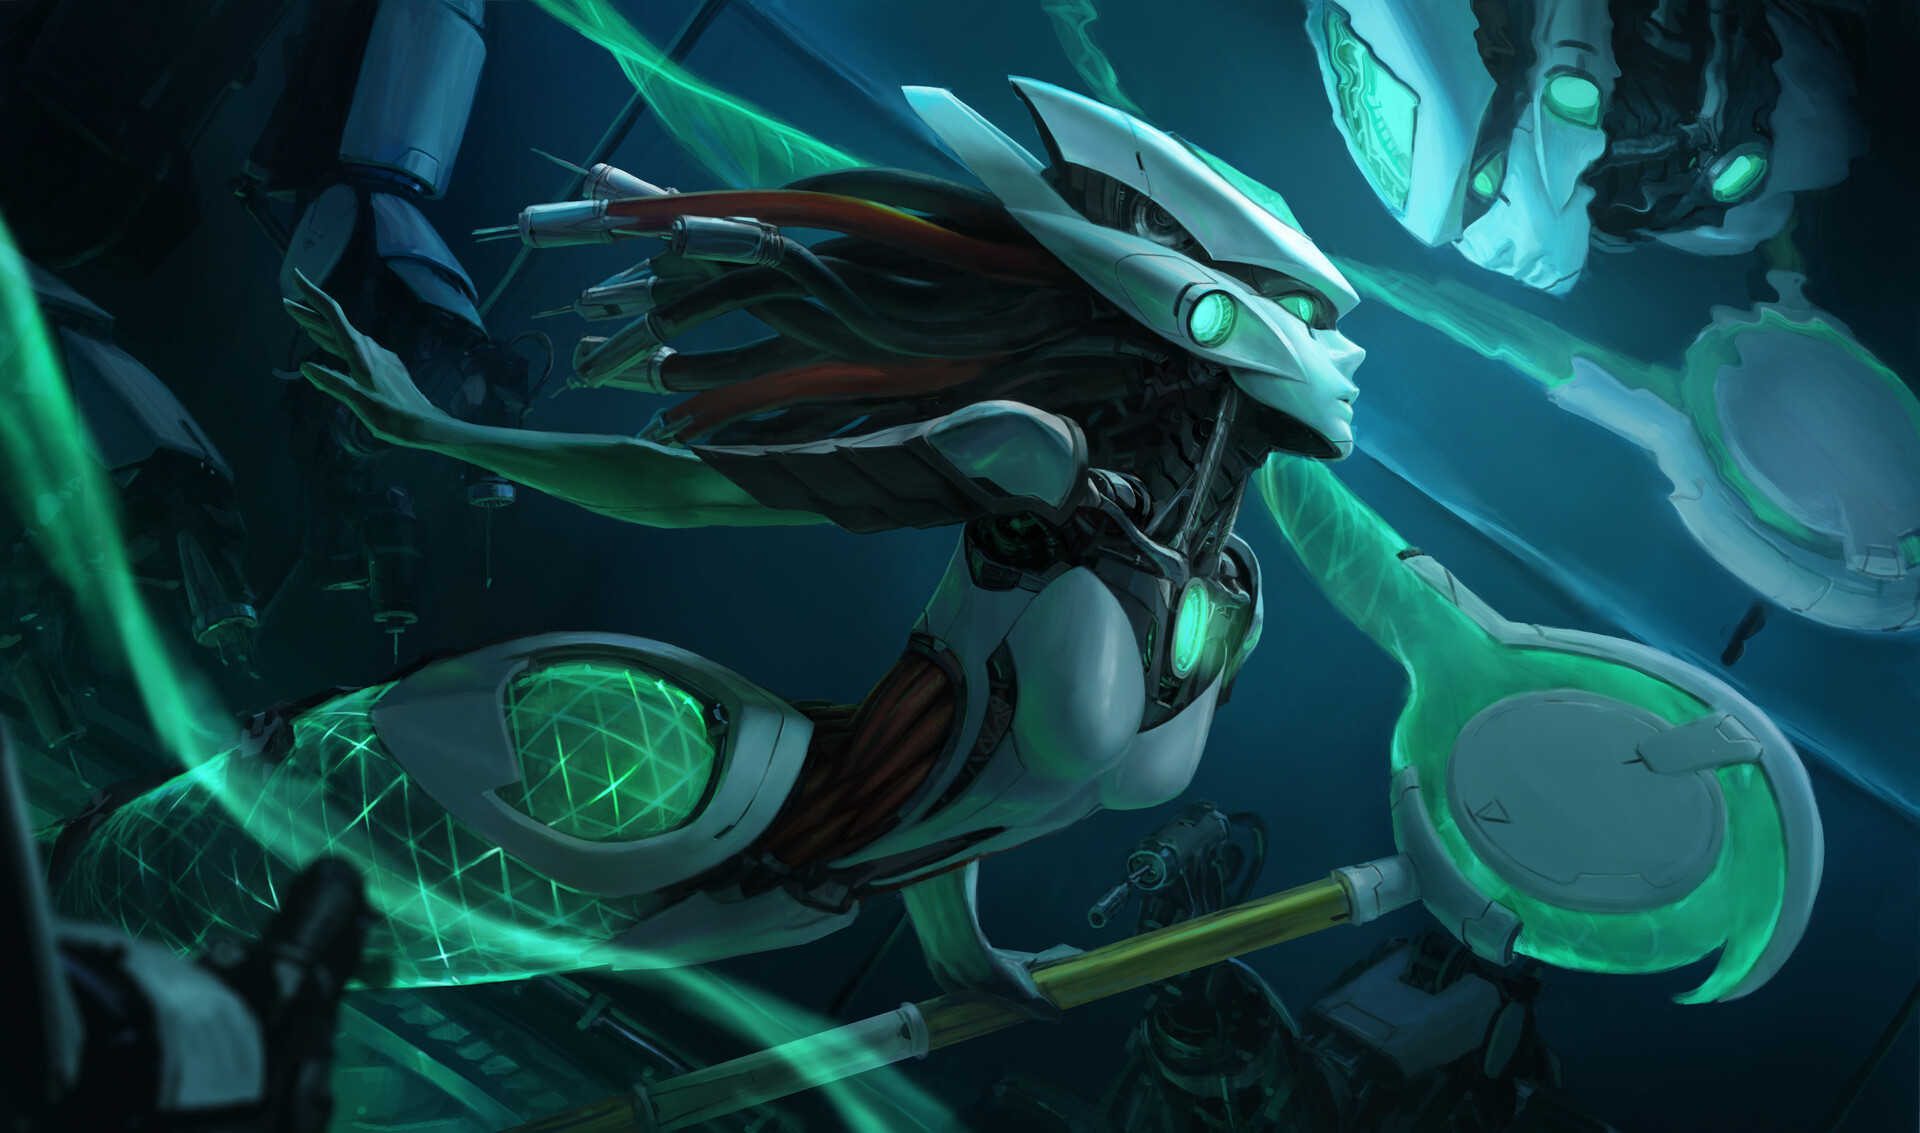 Nami League Of Legends Wallpaper Hd Games 4k Wallpapers Images Photos And Background